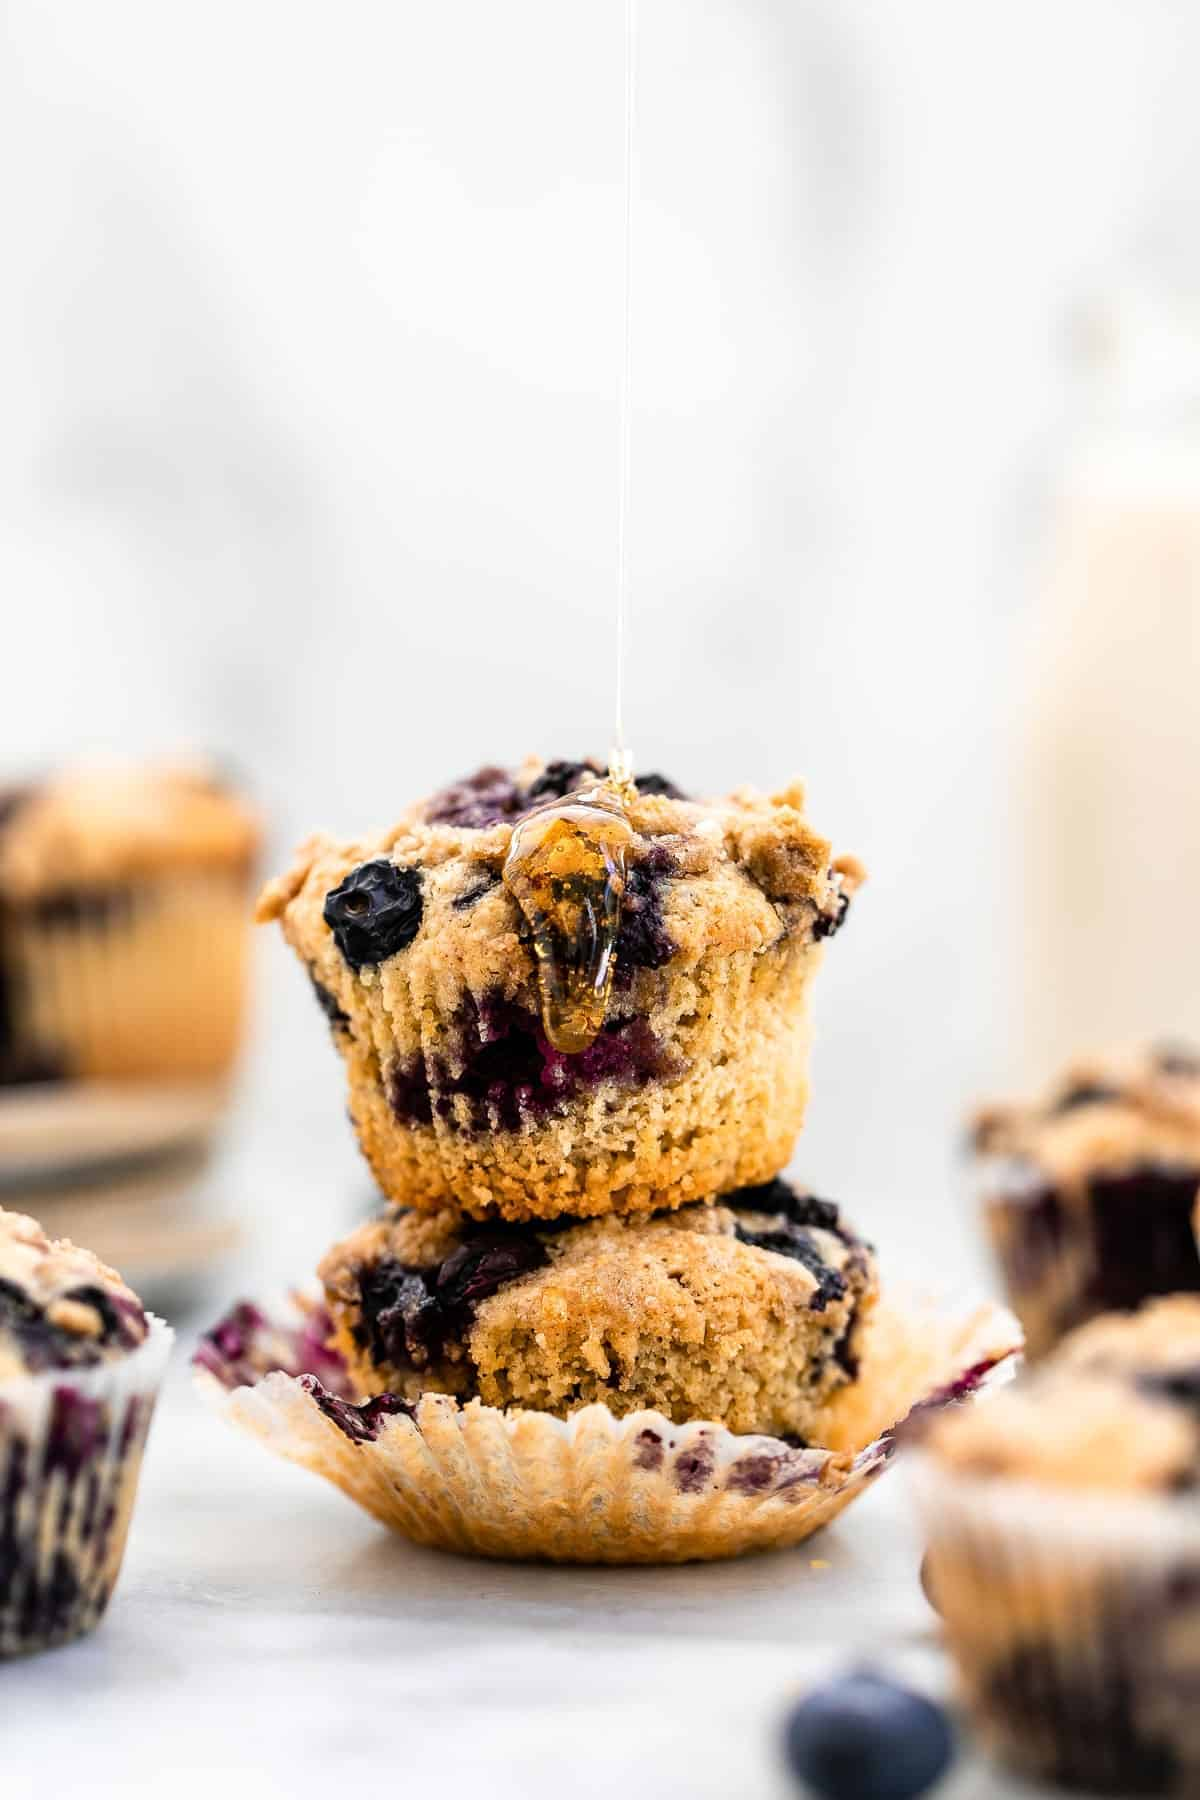 Honey dripping down a blueberry muffin.